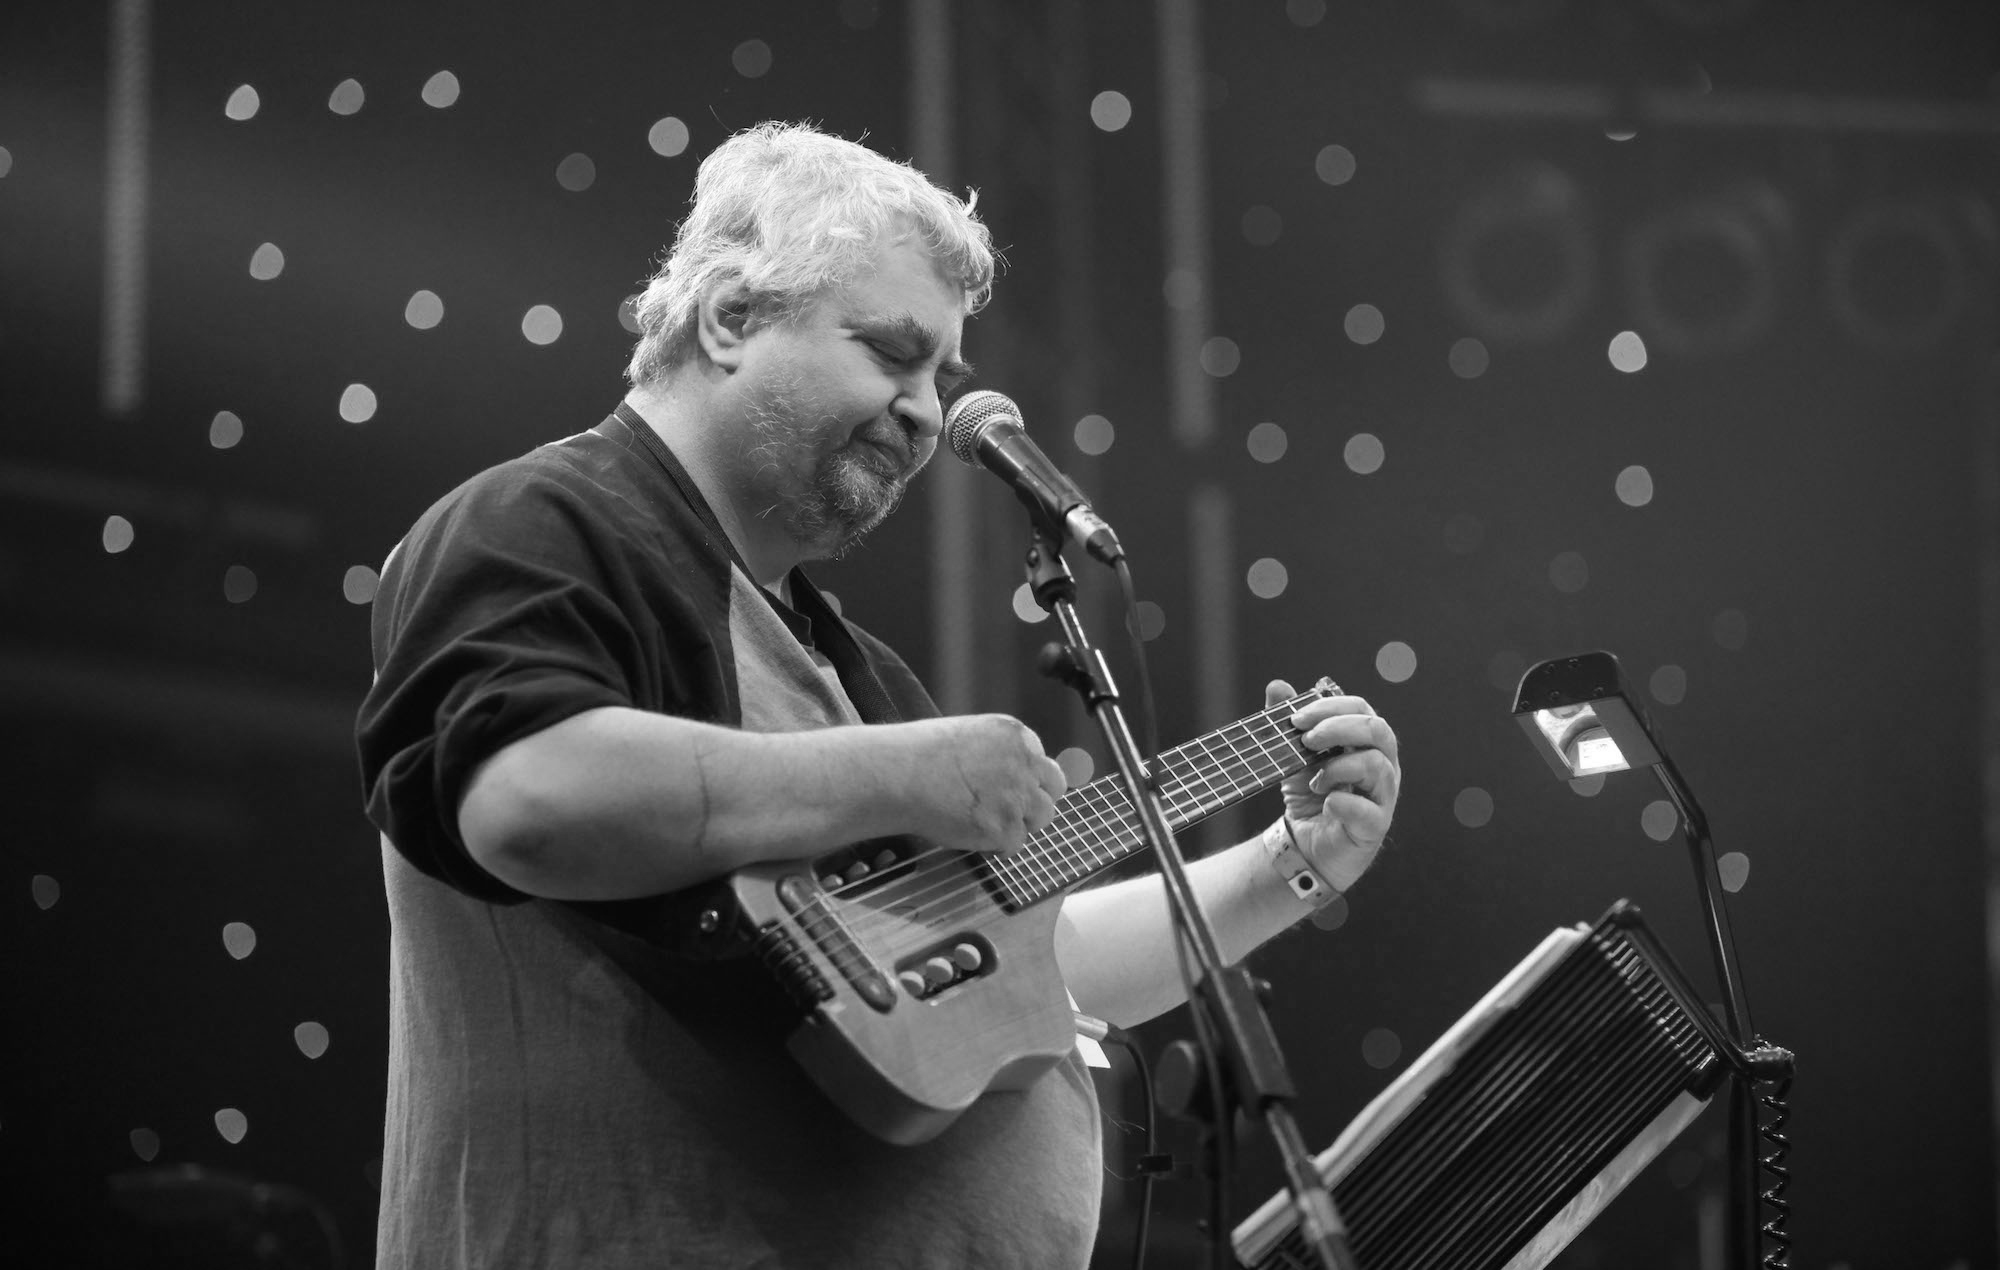 American singer /songwriter Daniel Johnston performing live as part of the ATP Festival, curated by Matt Groening at Minehead on May 9 2010. - Job: 86053 Ref: EWT - (Photo by Edd Westmacott/Photoshot/Getty Images)